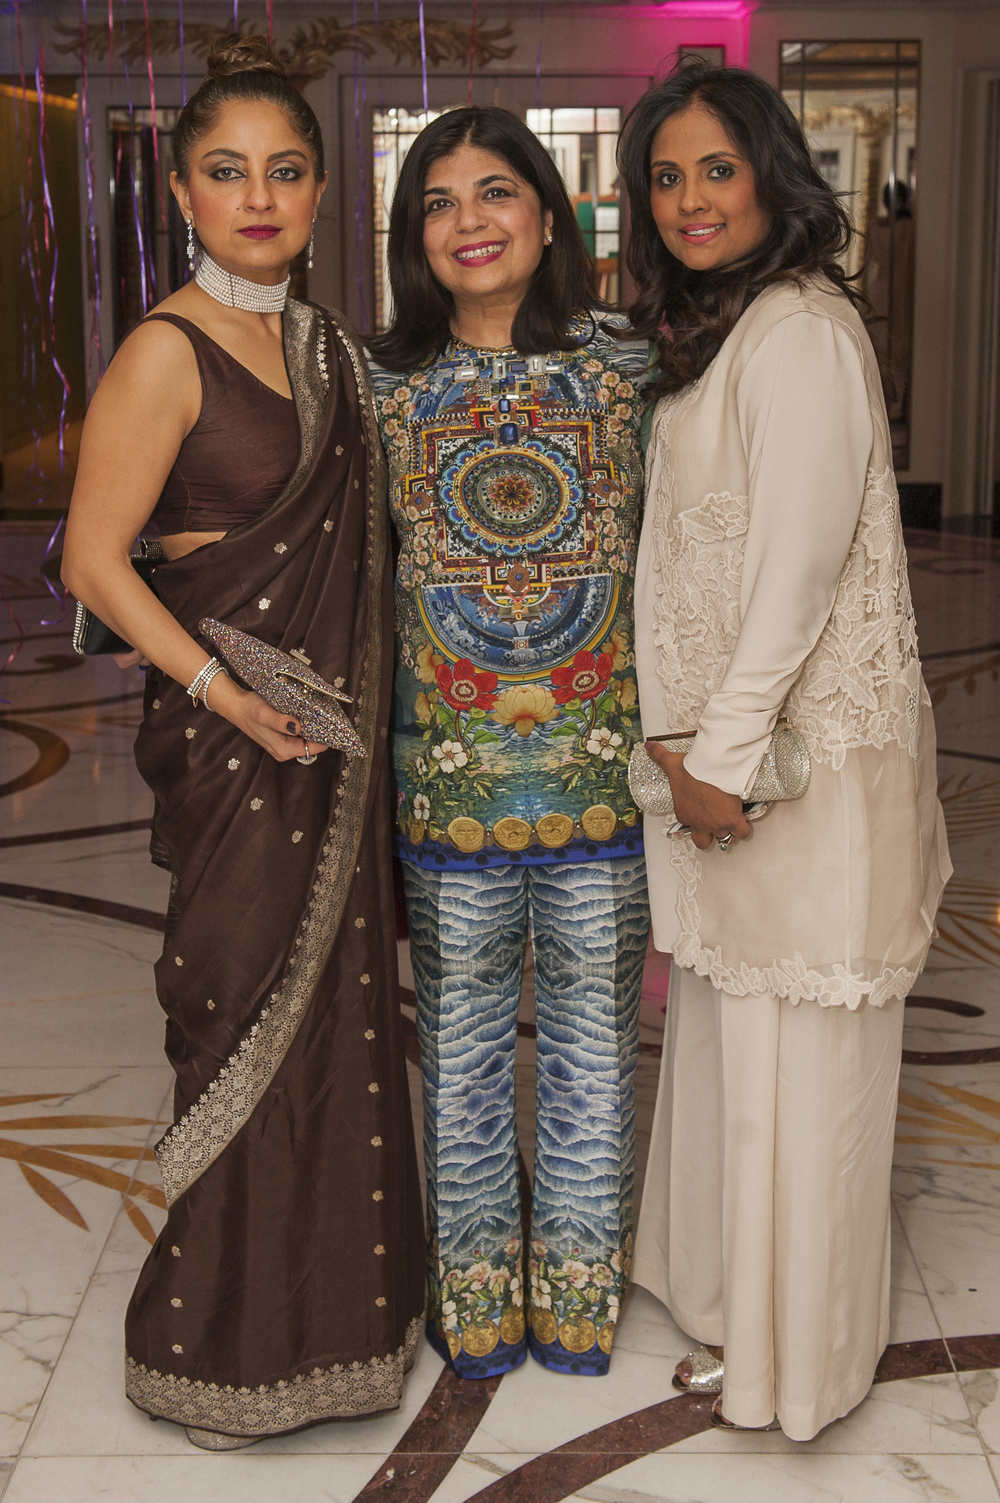 Aminah Jahan Jamil Zareen Aslam and Naureen Iqbal.jpg